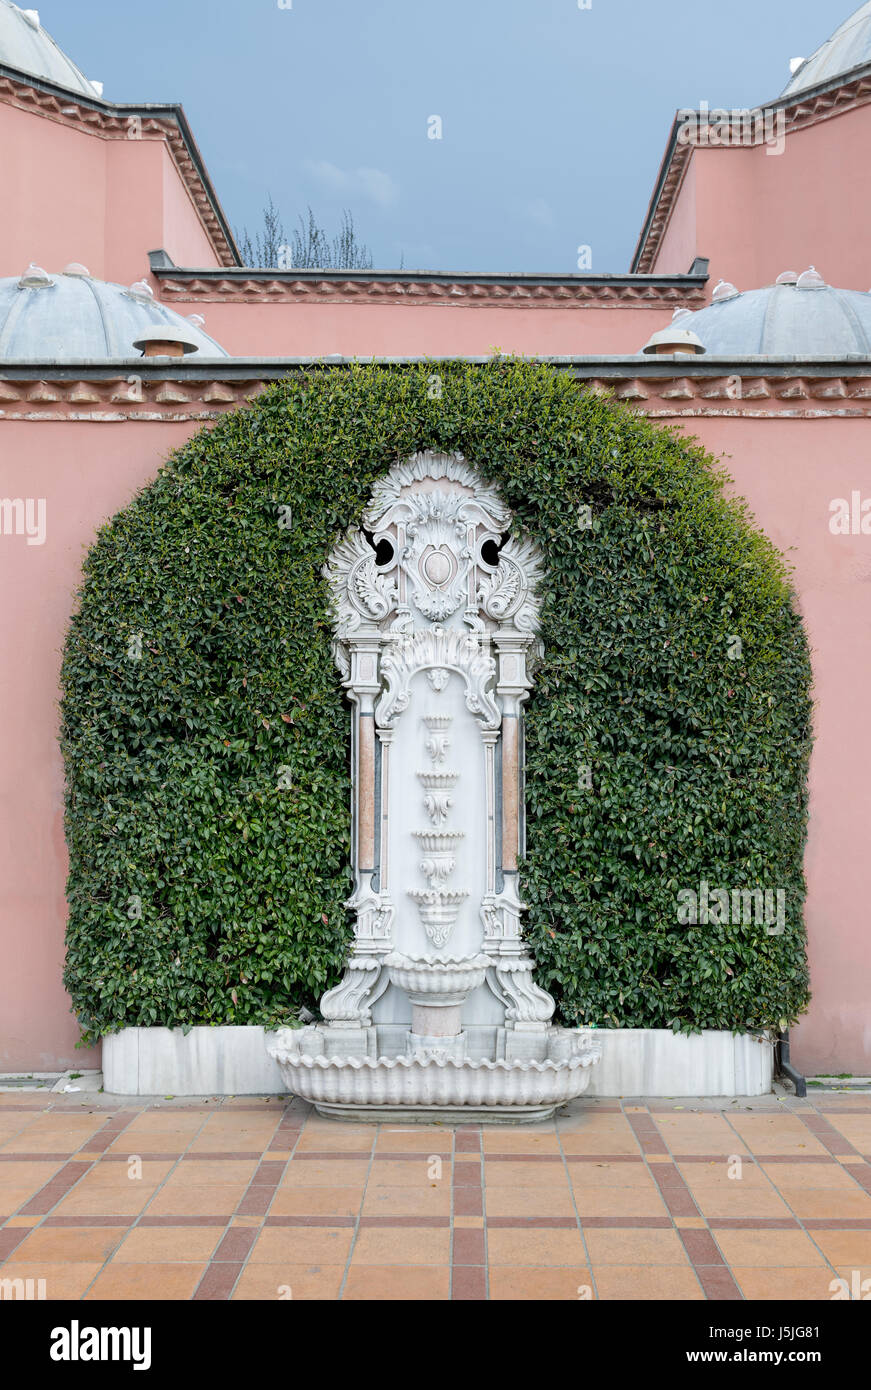 White marble sculpted wall fountain surrounded by green leaves over pink stone wall and tiled orange ceramic floor - Stock Image